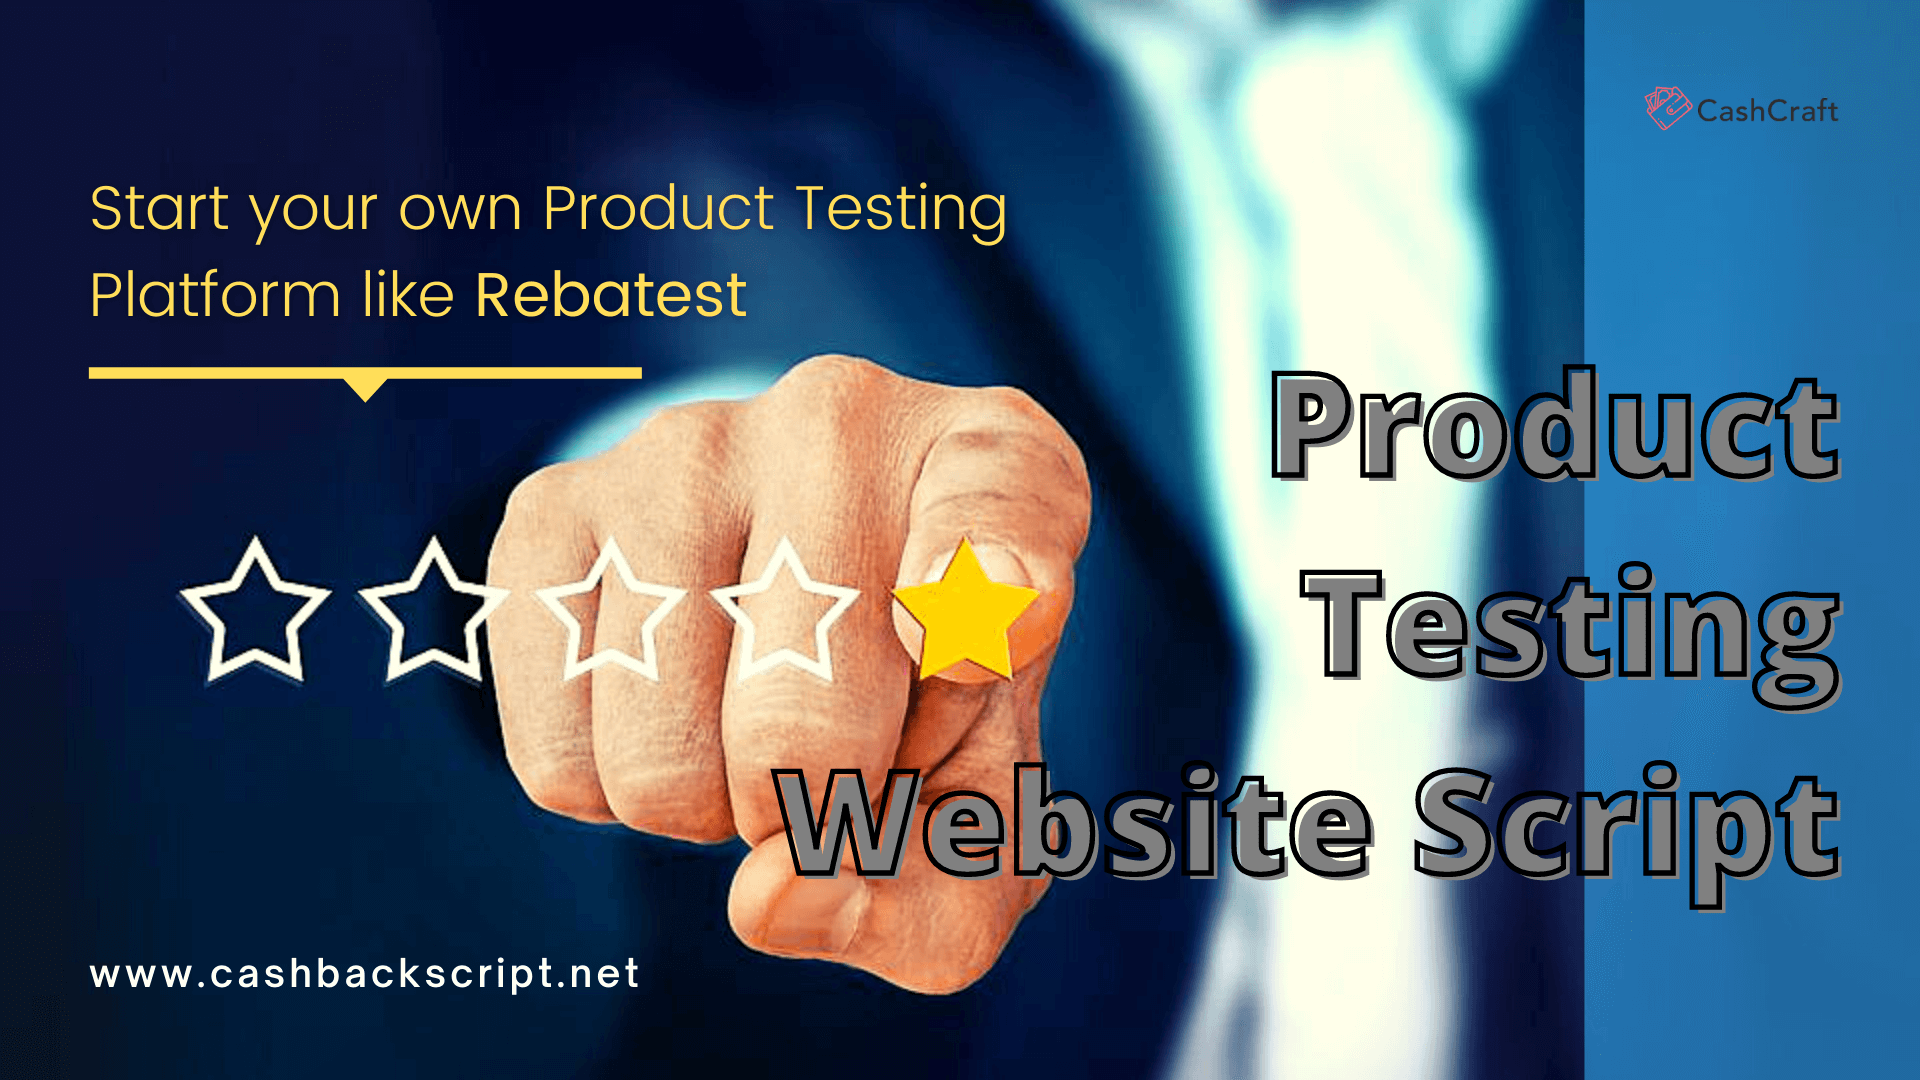 Start your own Product testing Platform like Rebatest